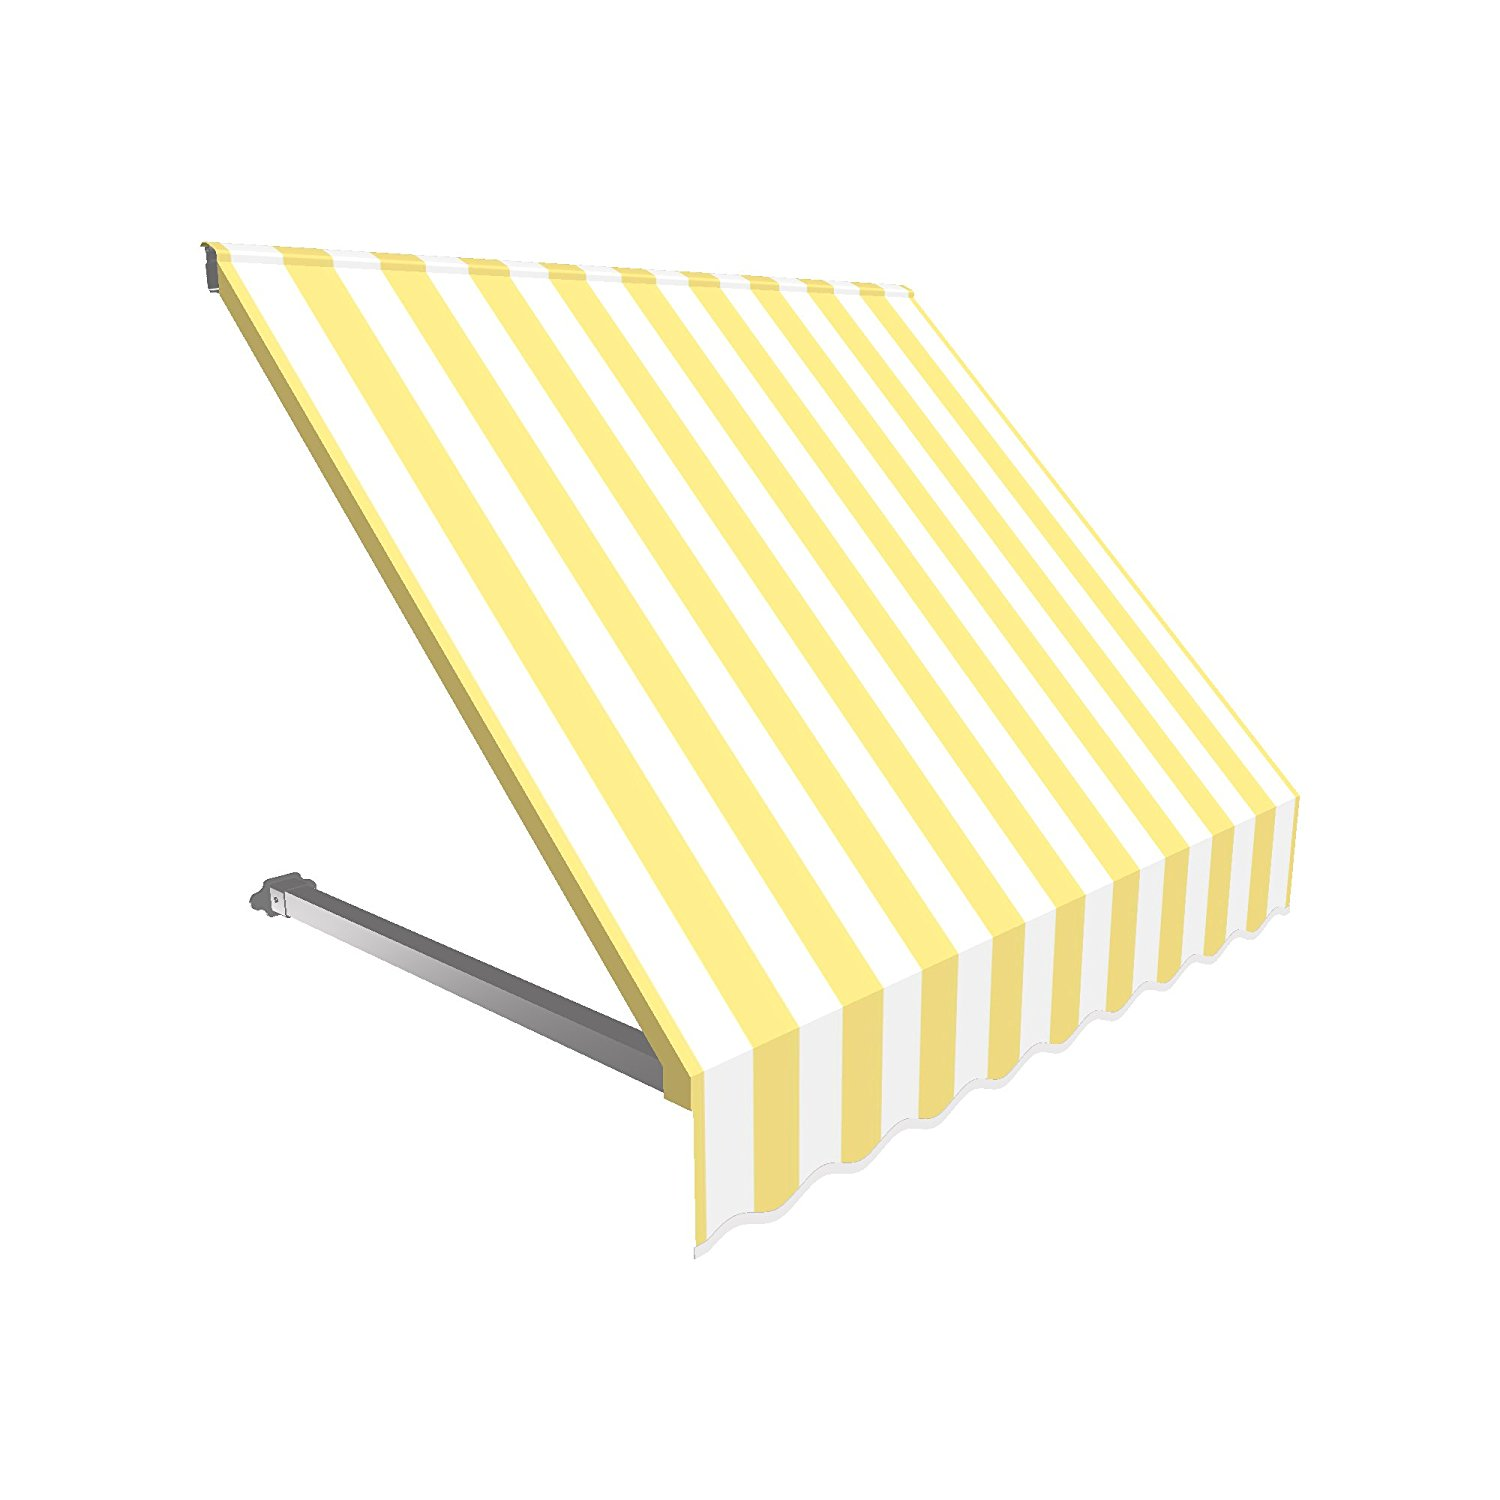 Beauty-Mark ER1836-a-5YW Window/Entry Awning, not applicable, Multicolor